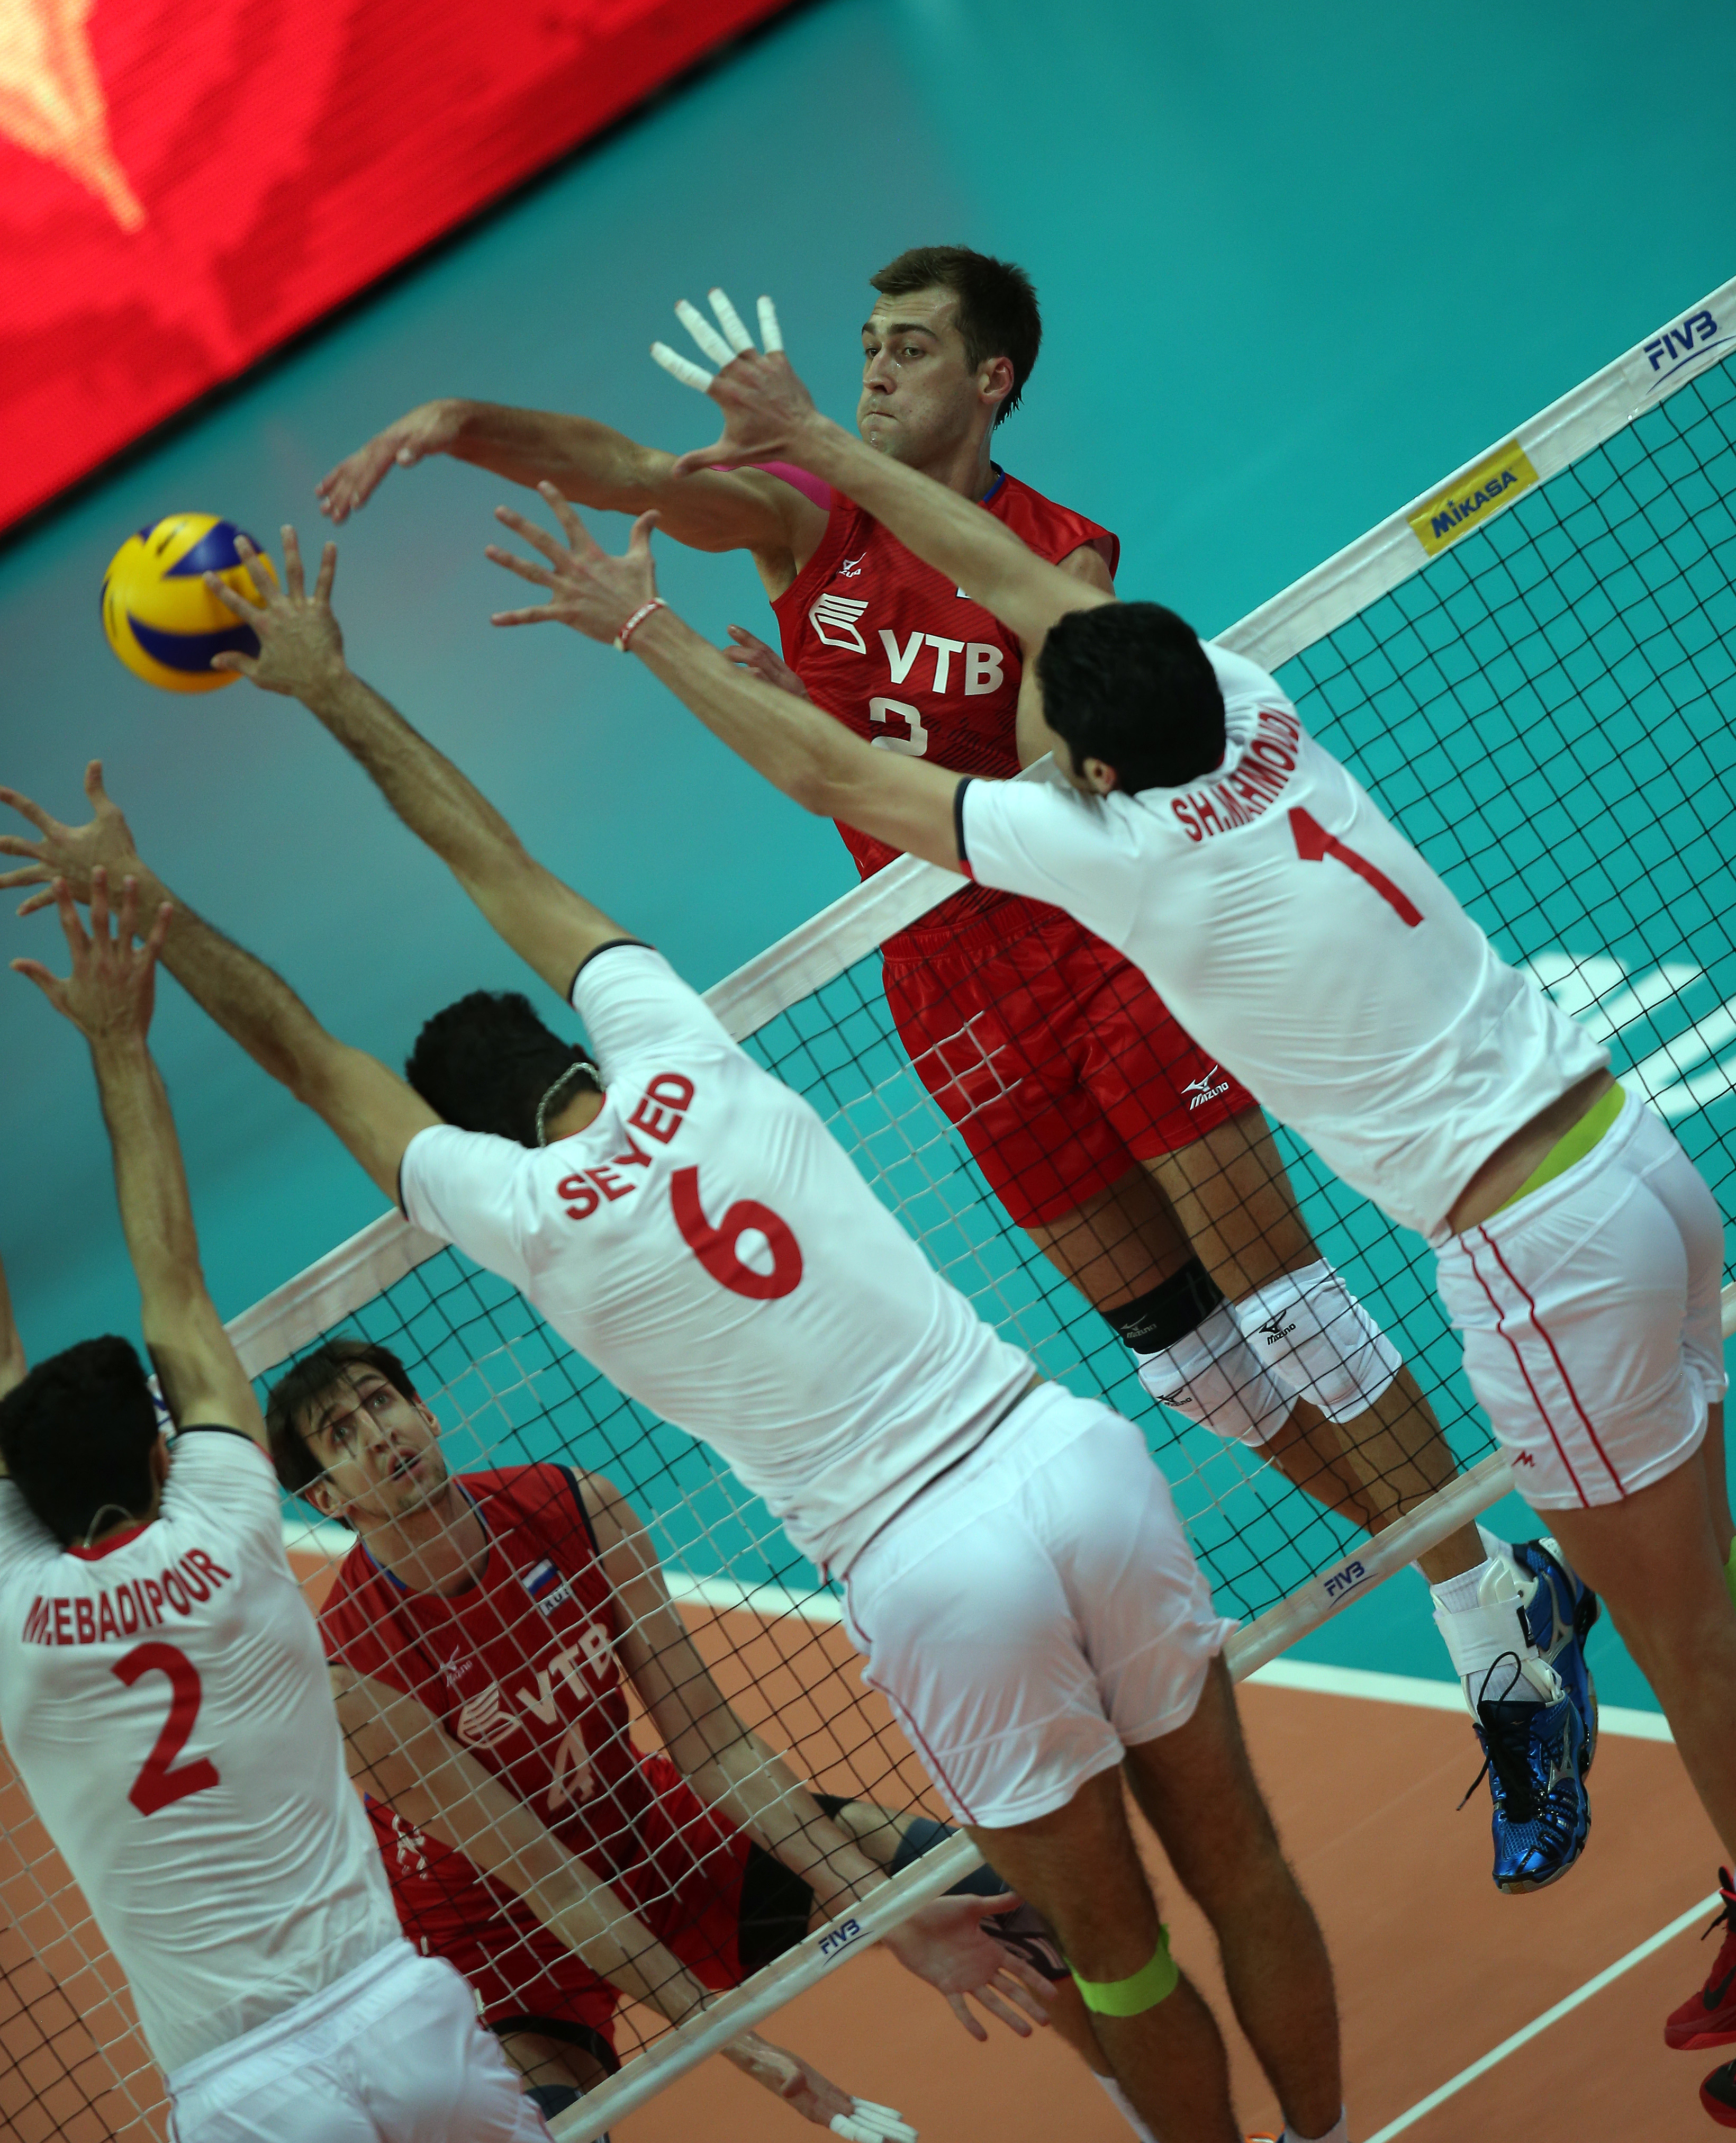 http://www.fivb.org/Vis2009/Images/GetImage.asmx?No=201480024&maxSize=960